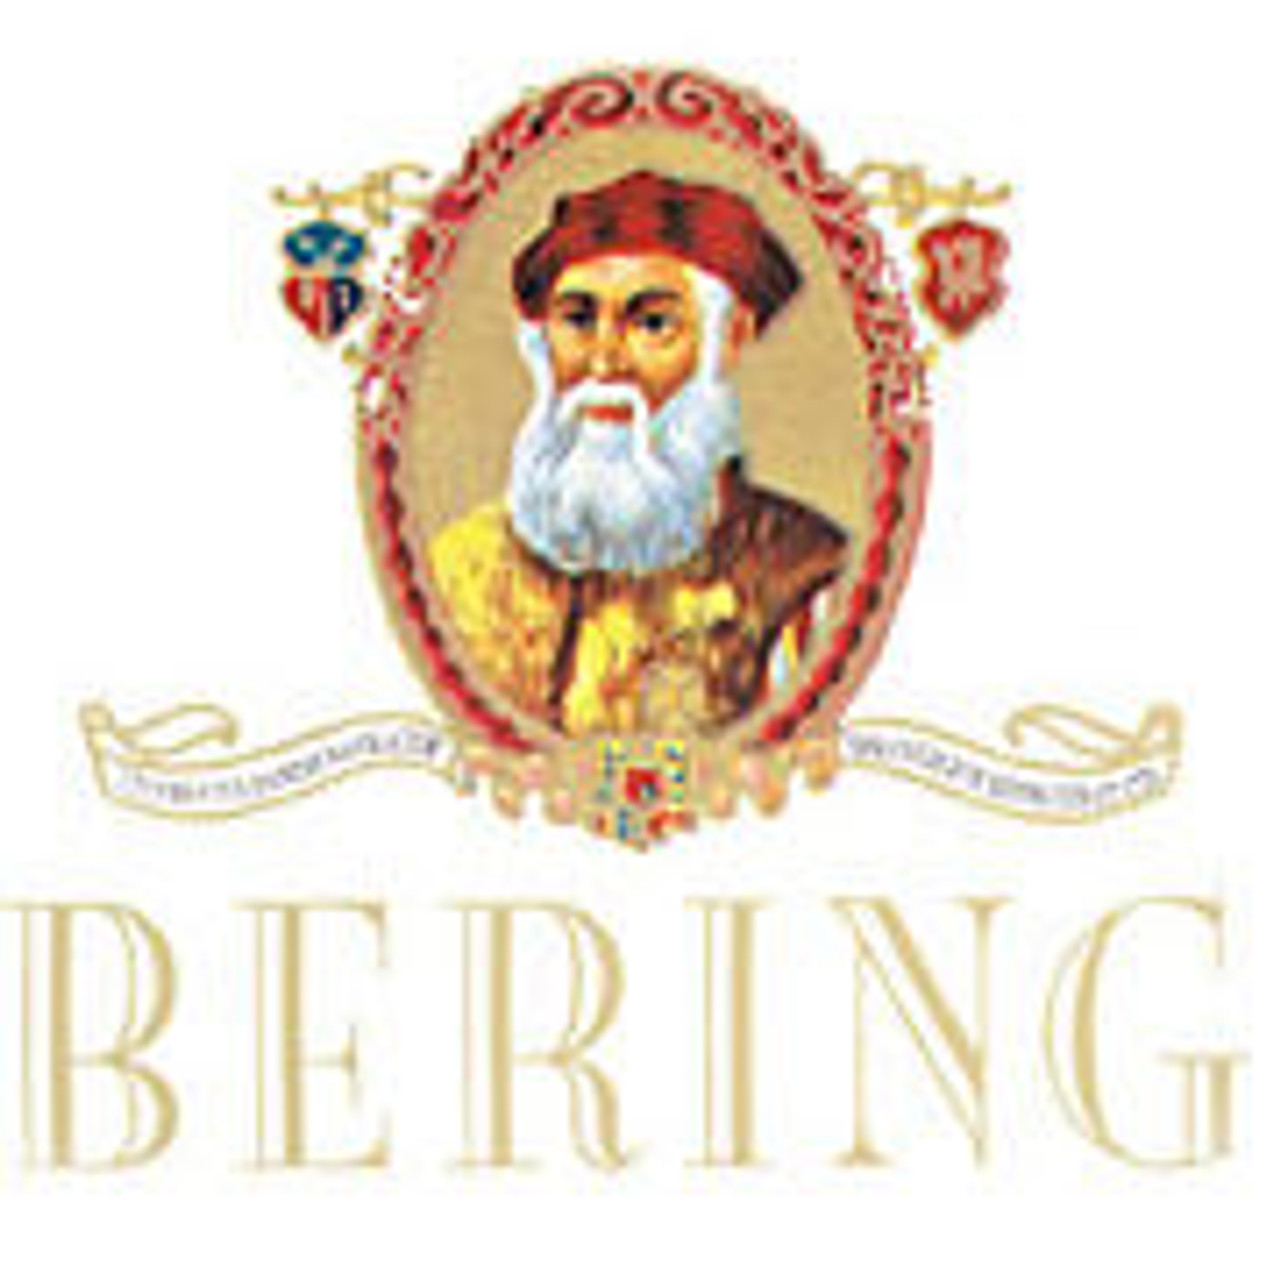 Bering Hispanos Cigars - 6 x 50 (Cedar Chest of 25)